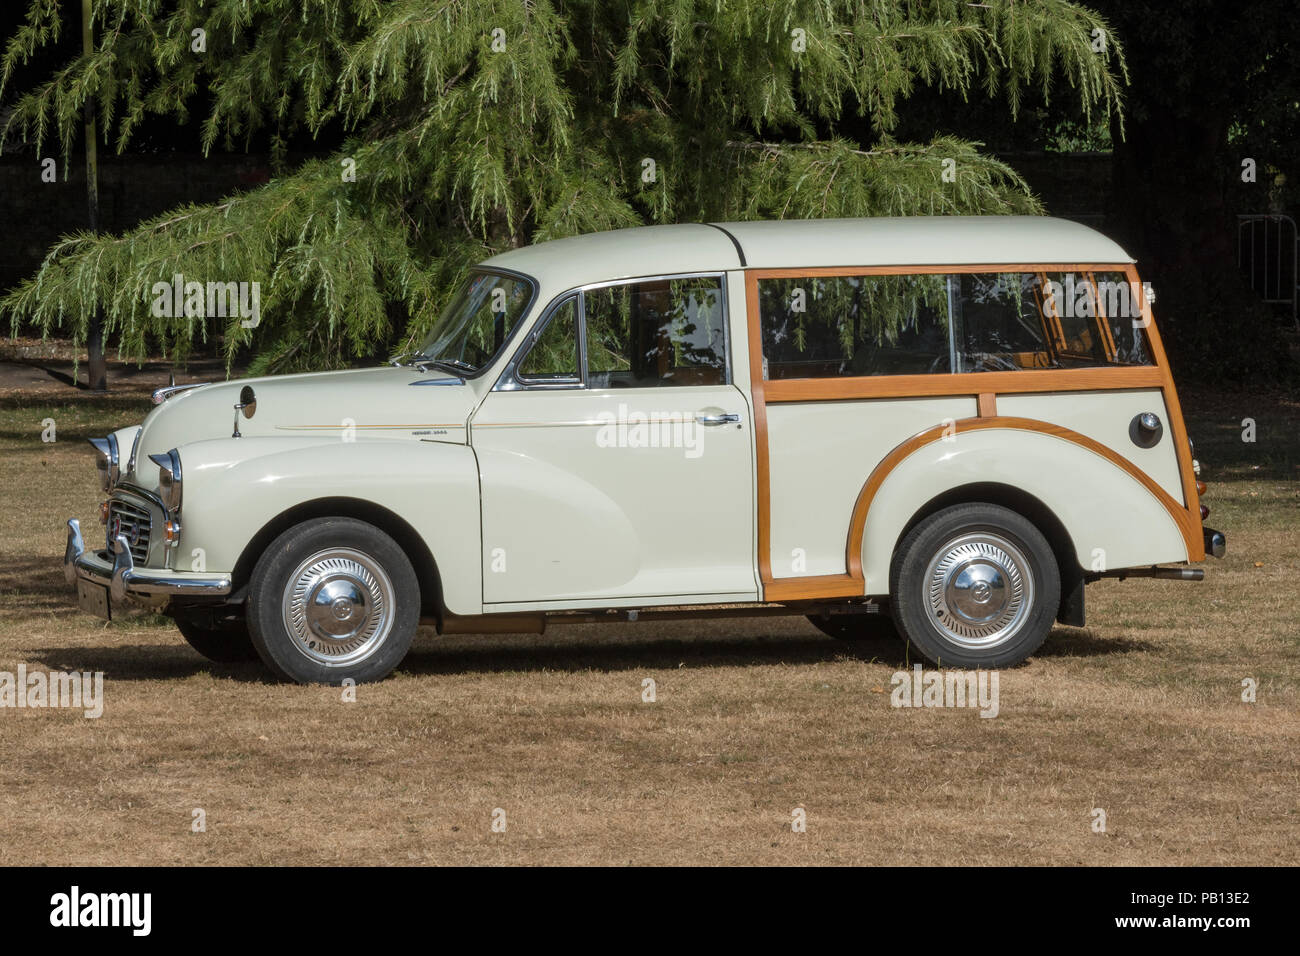 morris minor traveller vintage or collectors motor car. - Stock Image